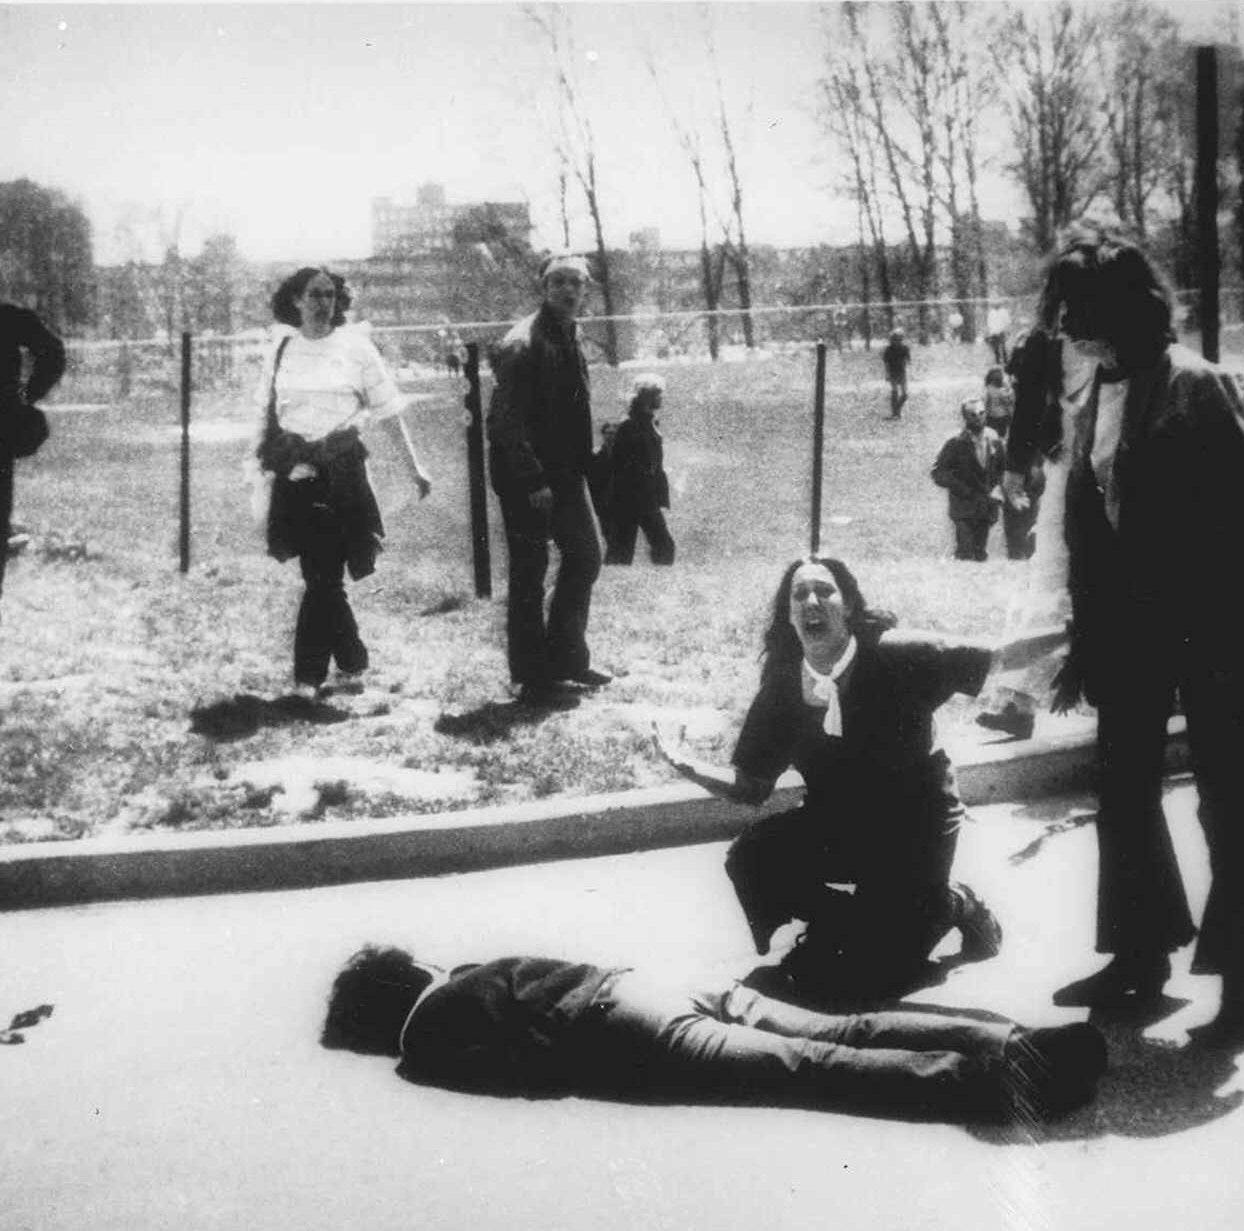 Today in History, May 4: Ohio National Guard killed 4 students at Kent State